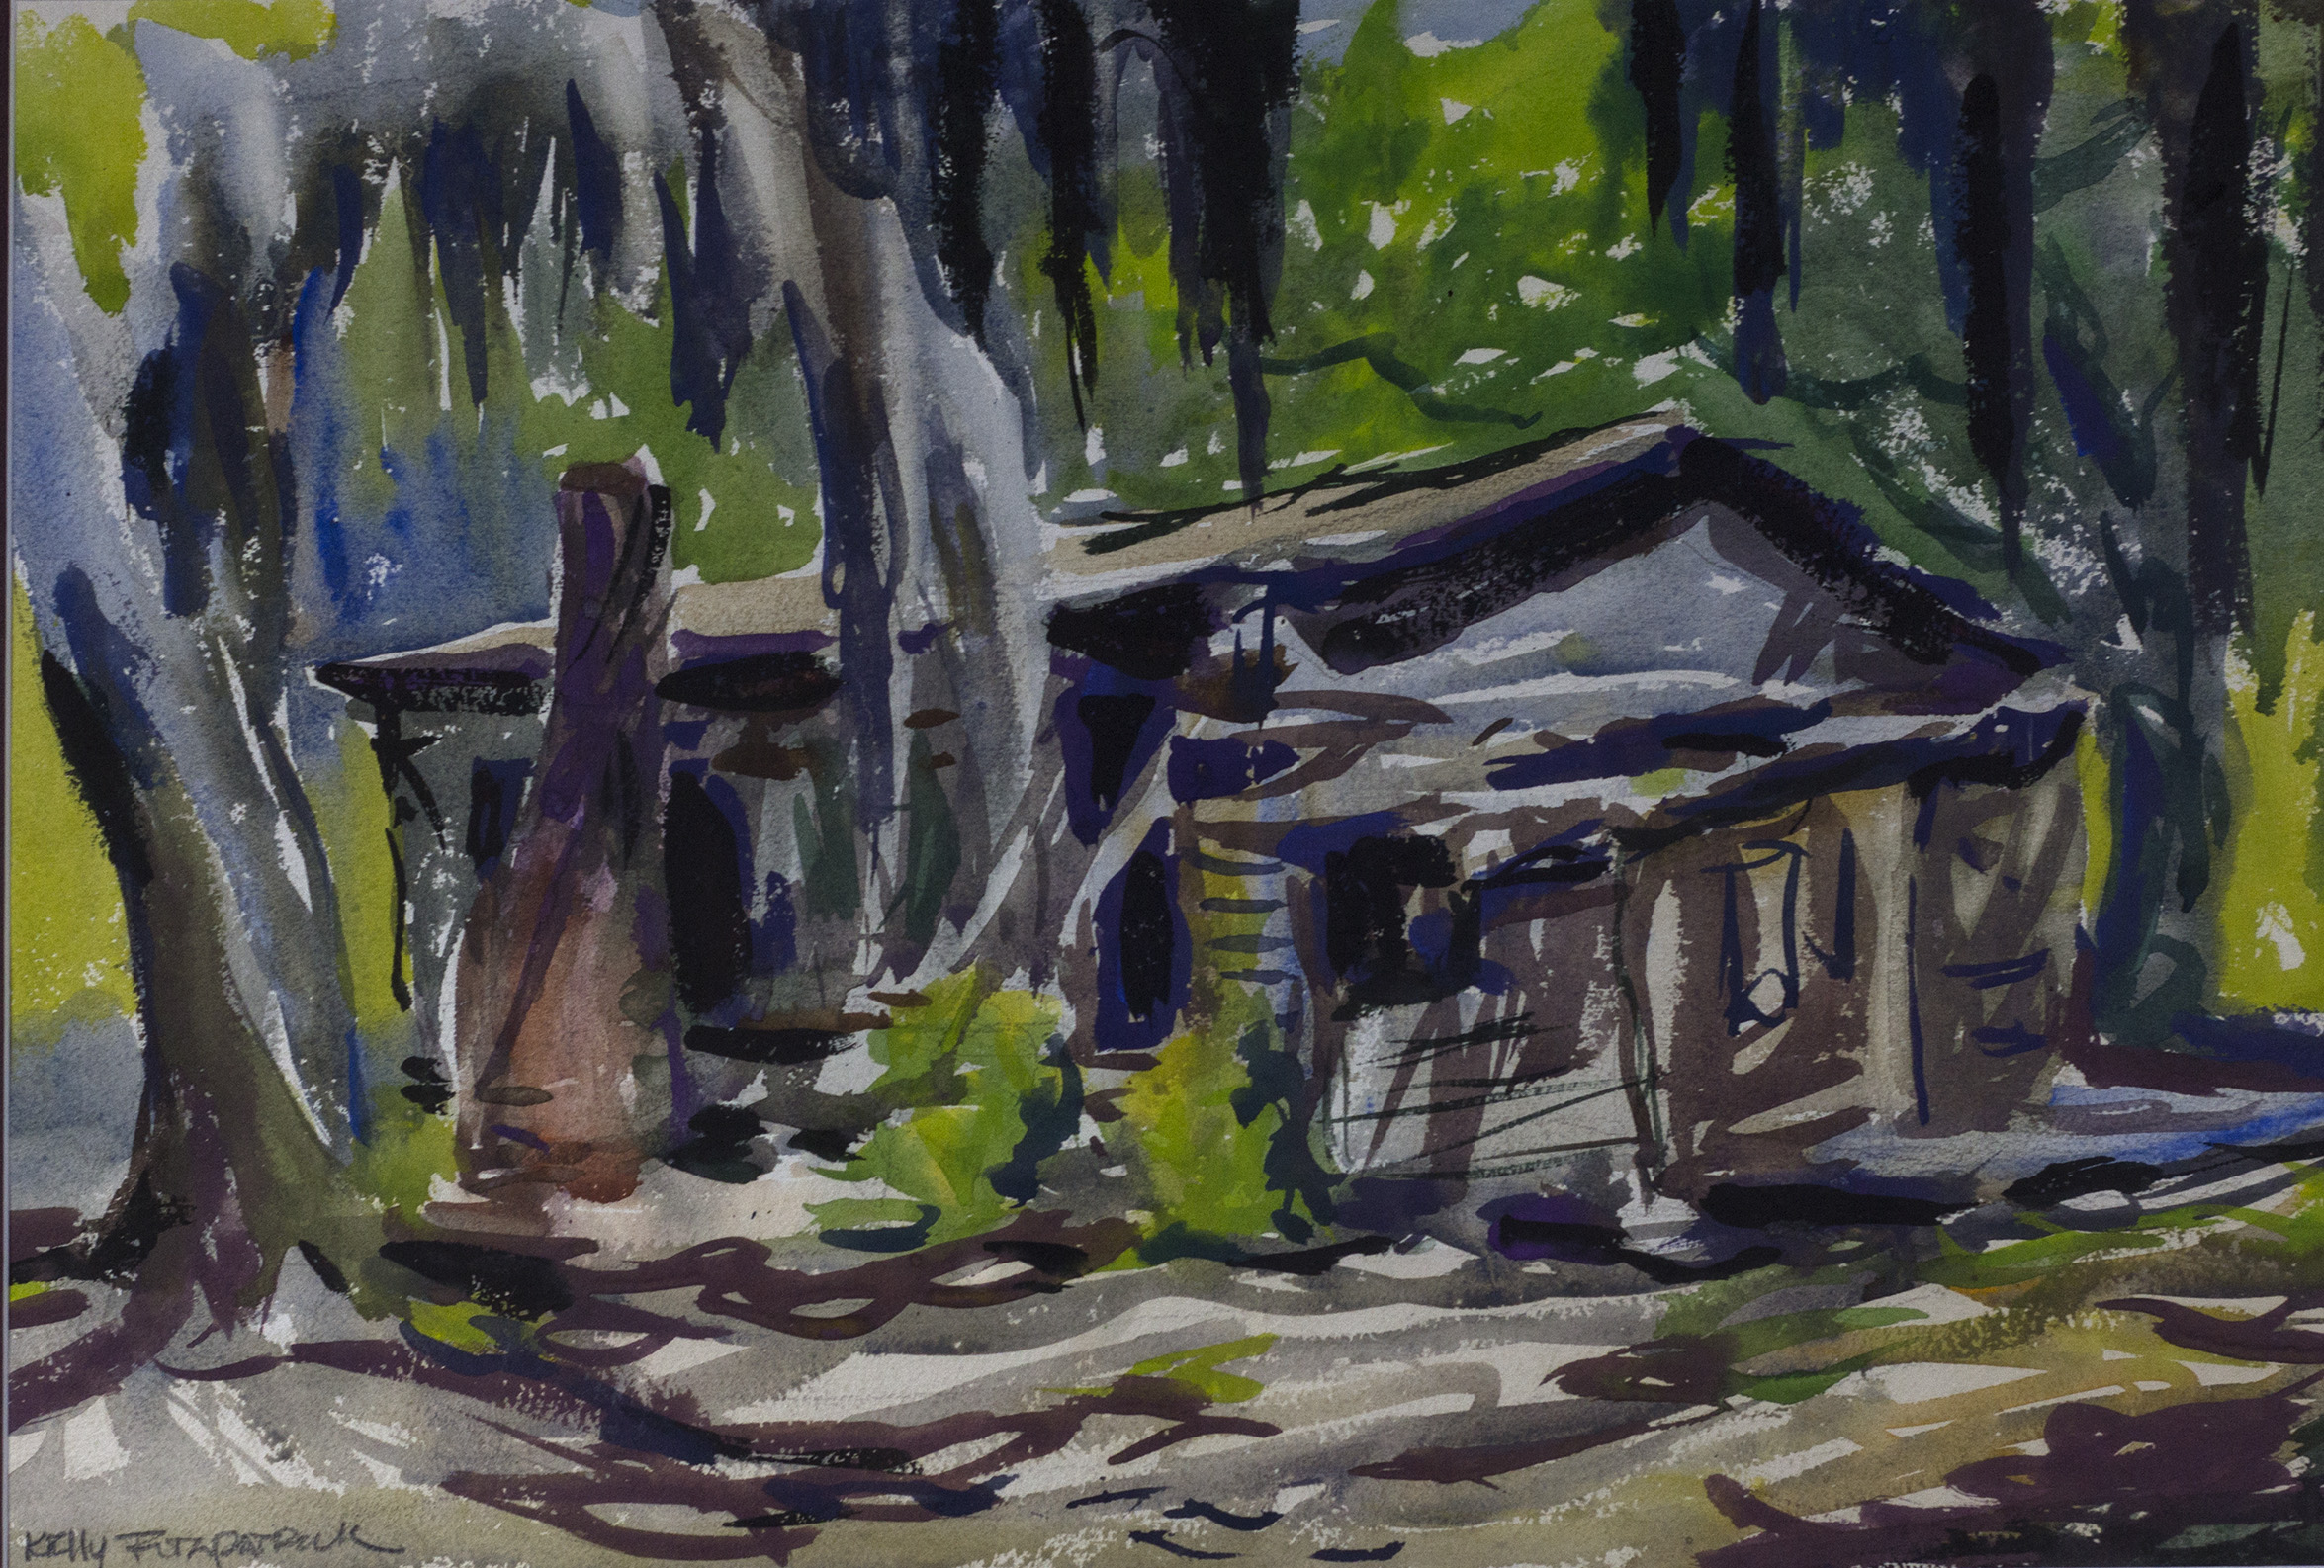 Cabin in the Woods, John Kelly Fitzpatrick, Watercolor, Donation